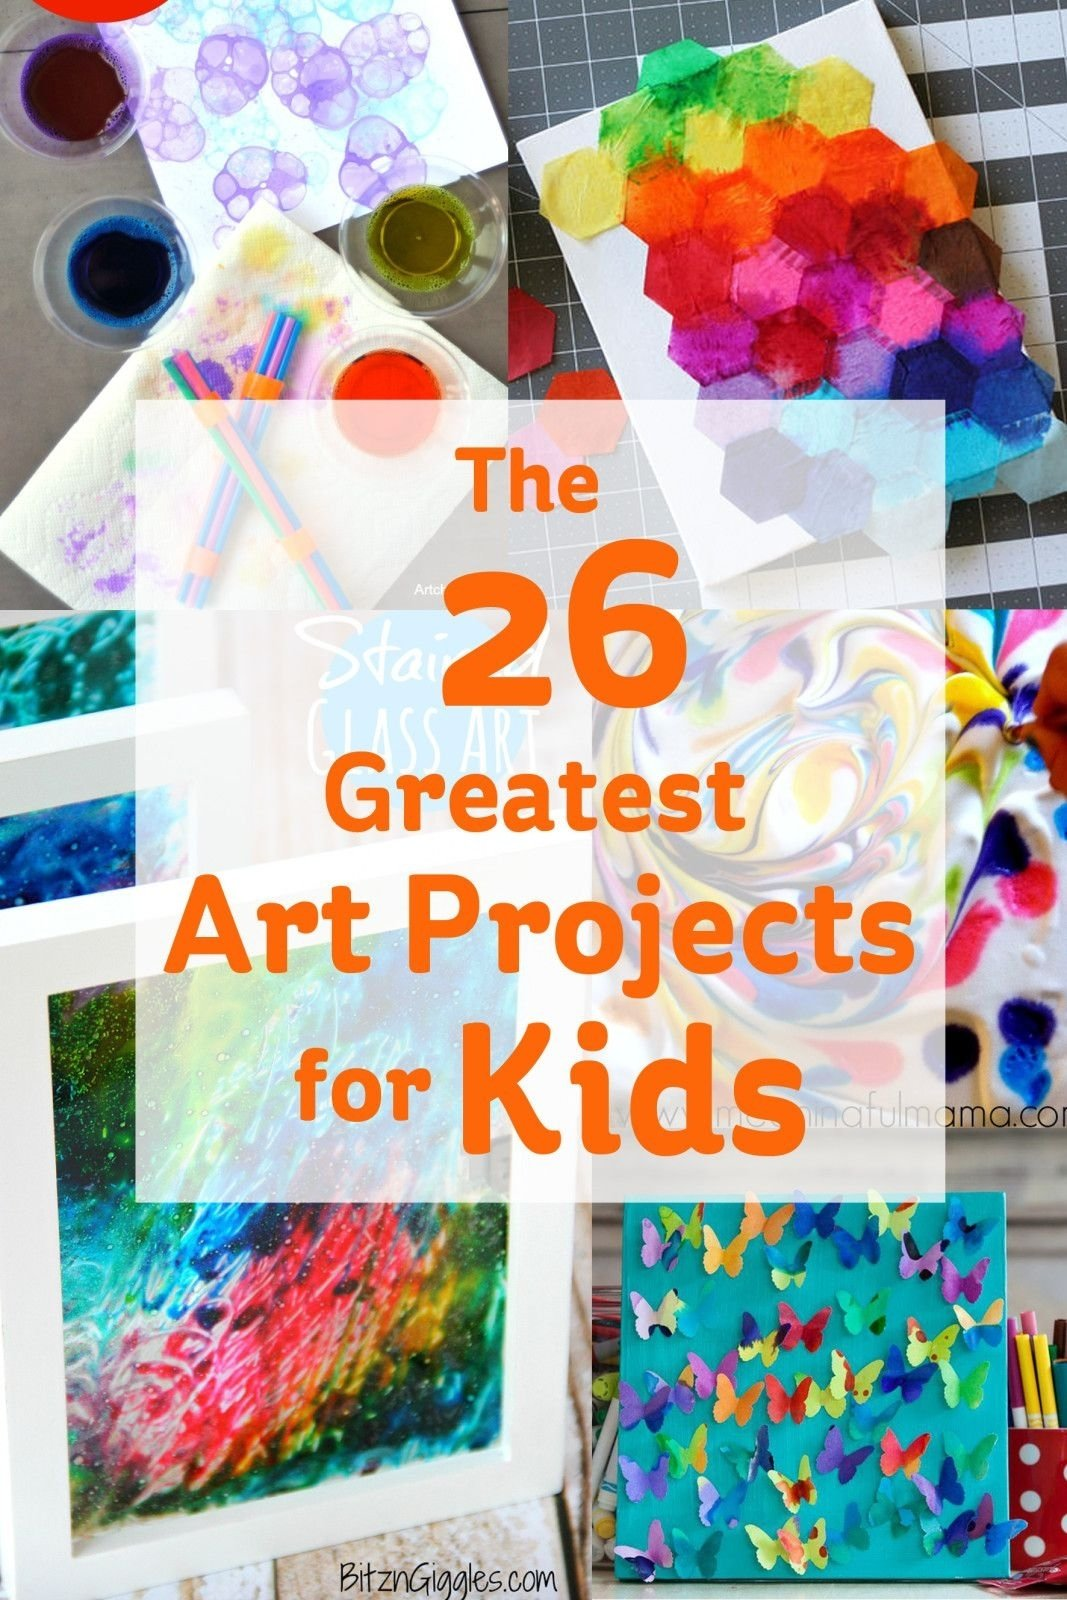 10 Attractive Art Project Ideas For Kids the 26 greatest art projects for kids flow juice and creative 2021